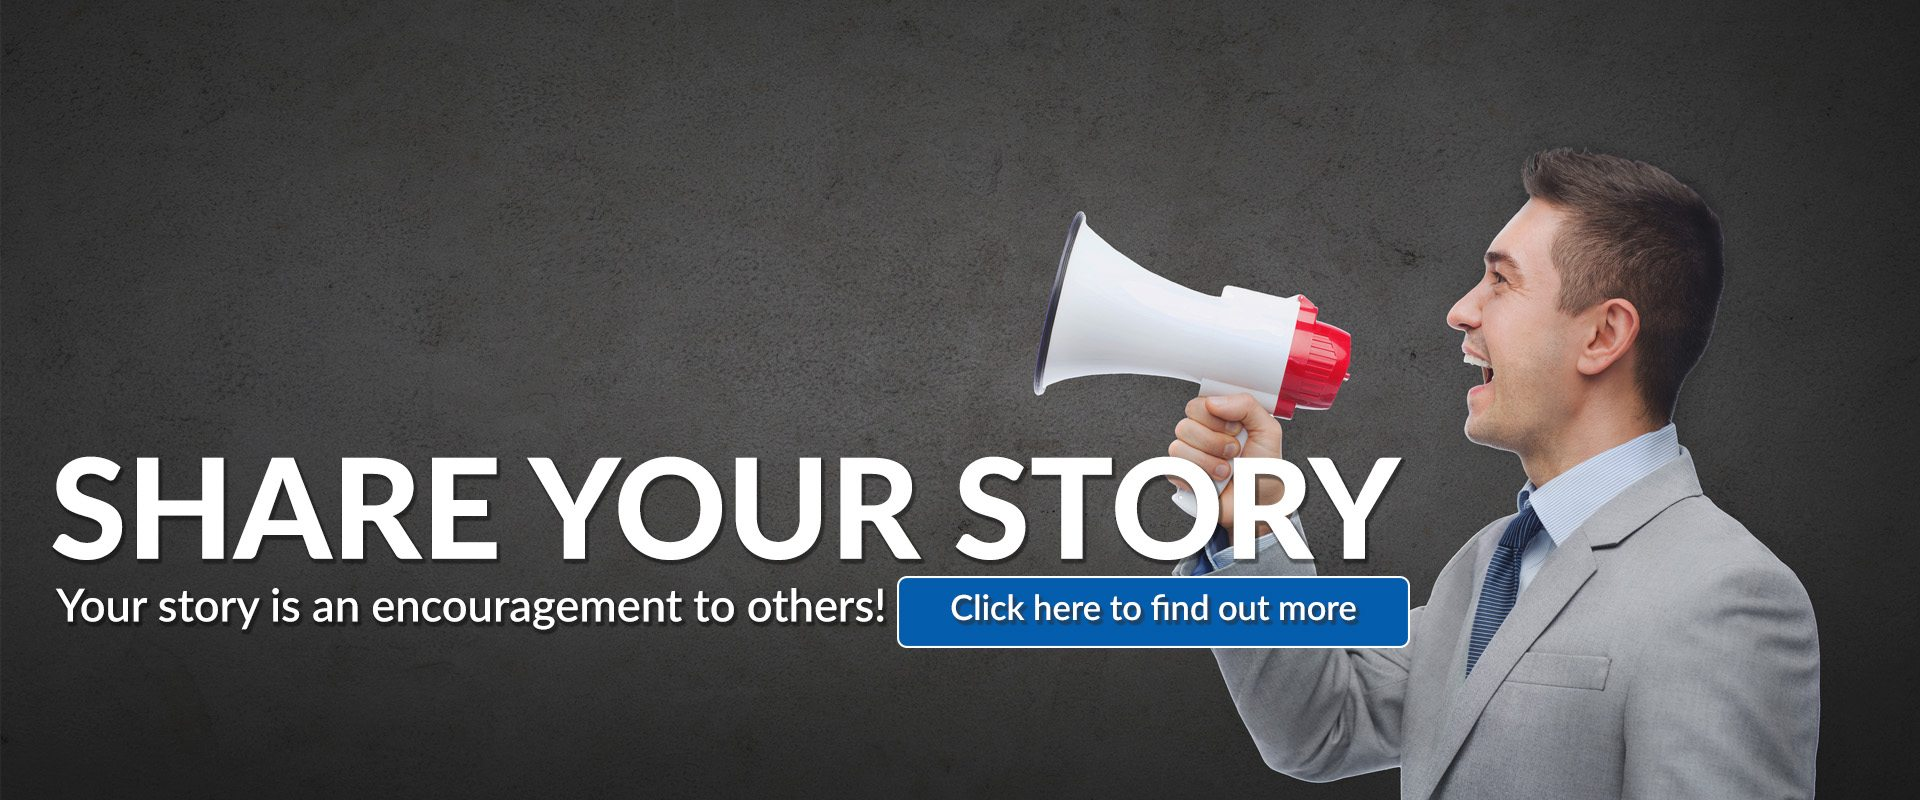 91.3 KGLY East Texas Christian Radio Share Your Story